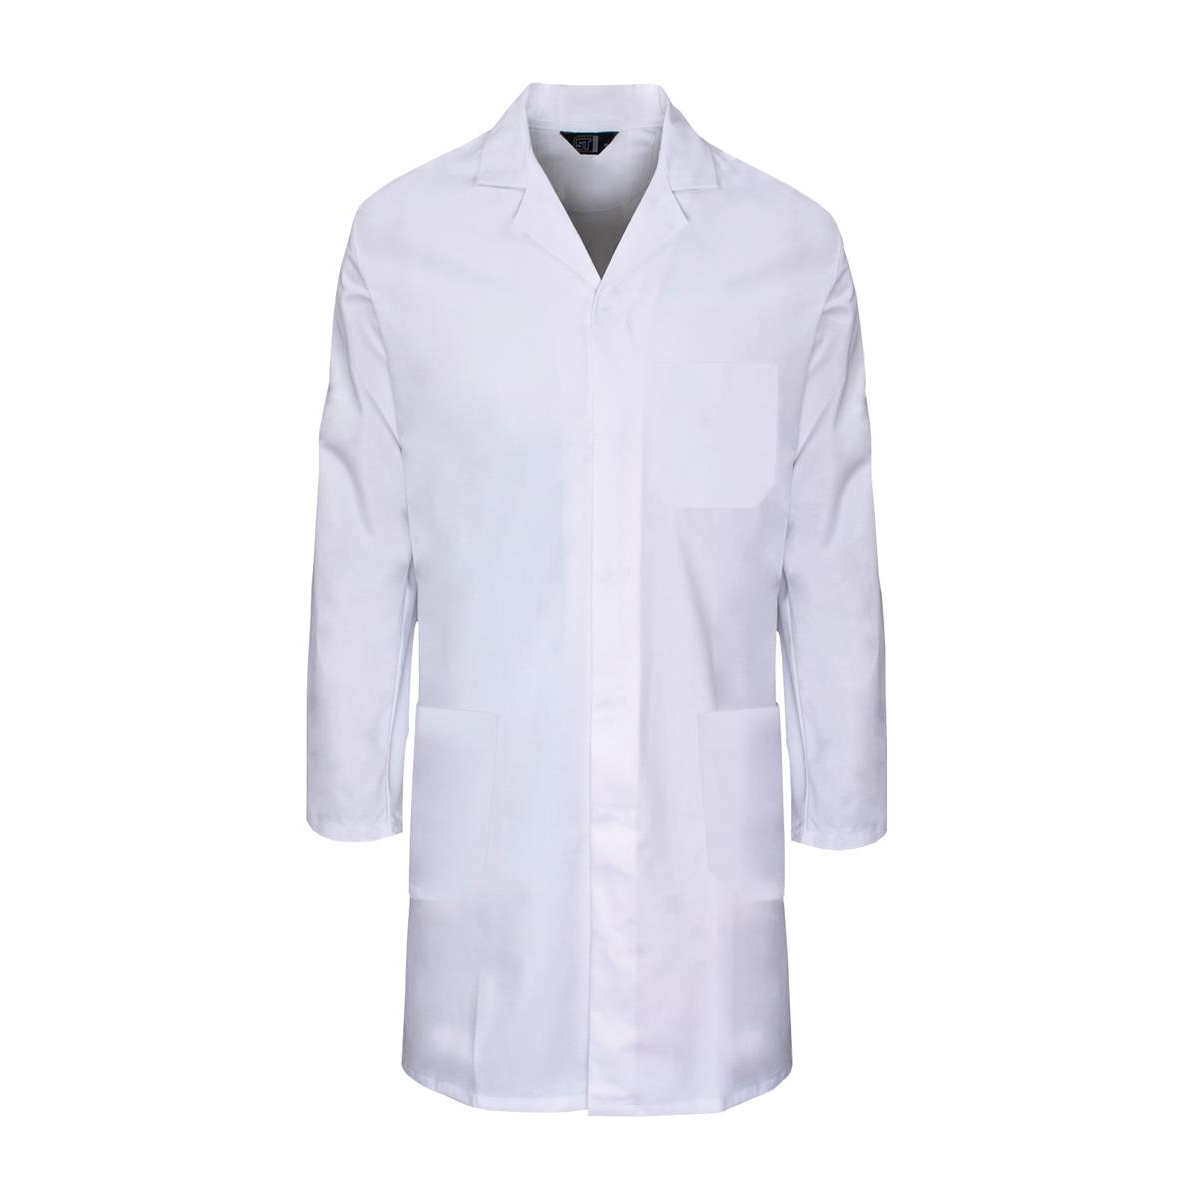 Lab Coat Polycotton with 3 Pockets XXLarge White Ref PCWCW50 *Approx 3 Day Leadtime*